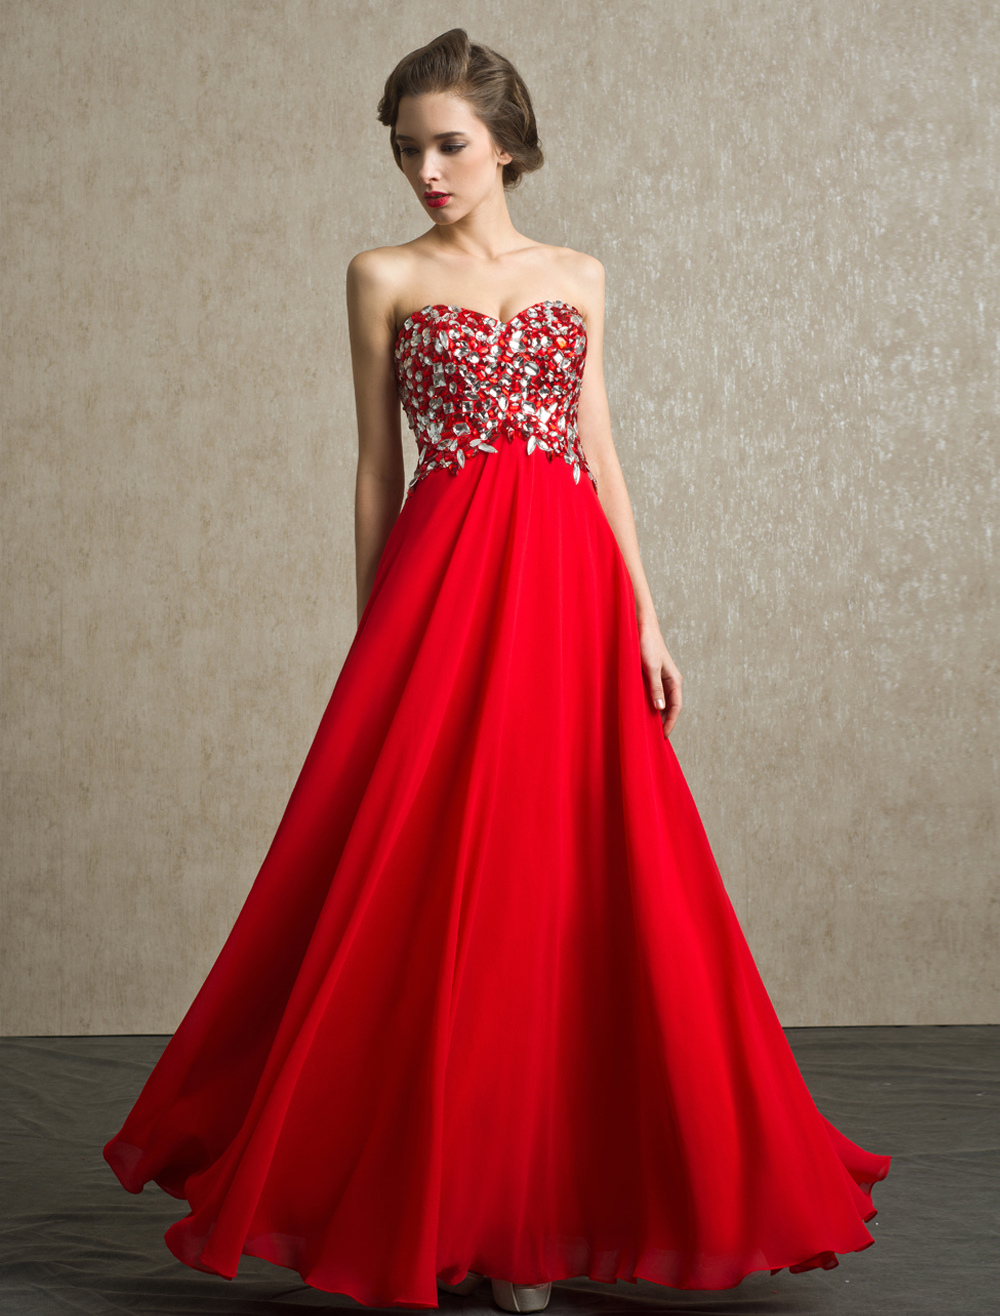 Red Prom Dresses 2018 Long Strapless Backless Evening Dress Rhinestone Chiffon Party Dress